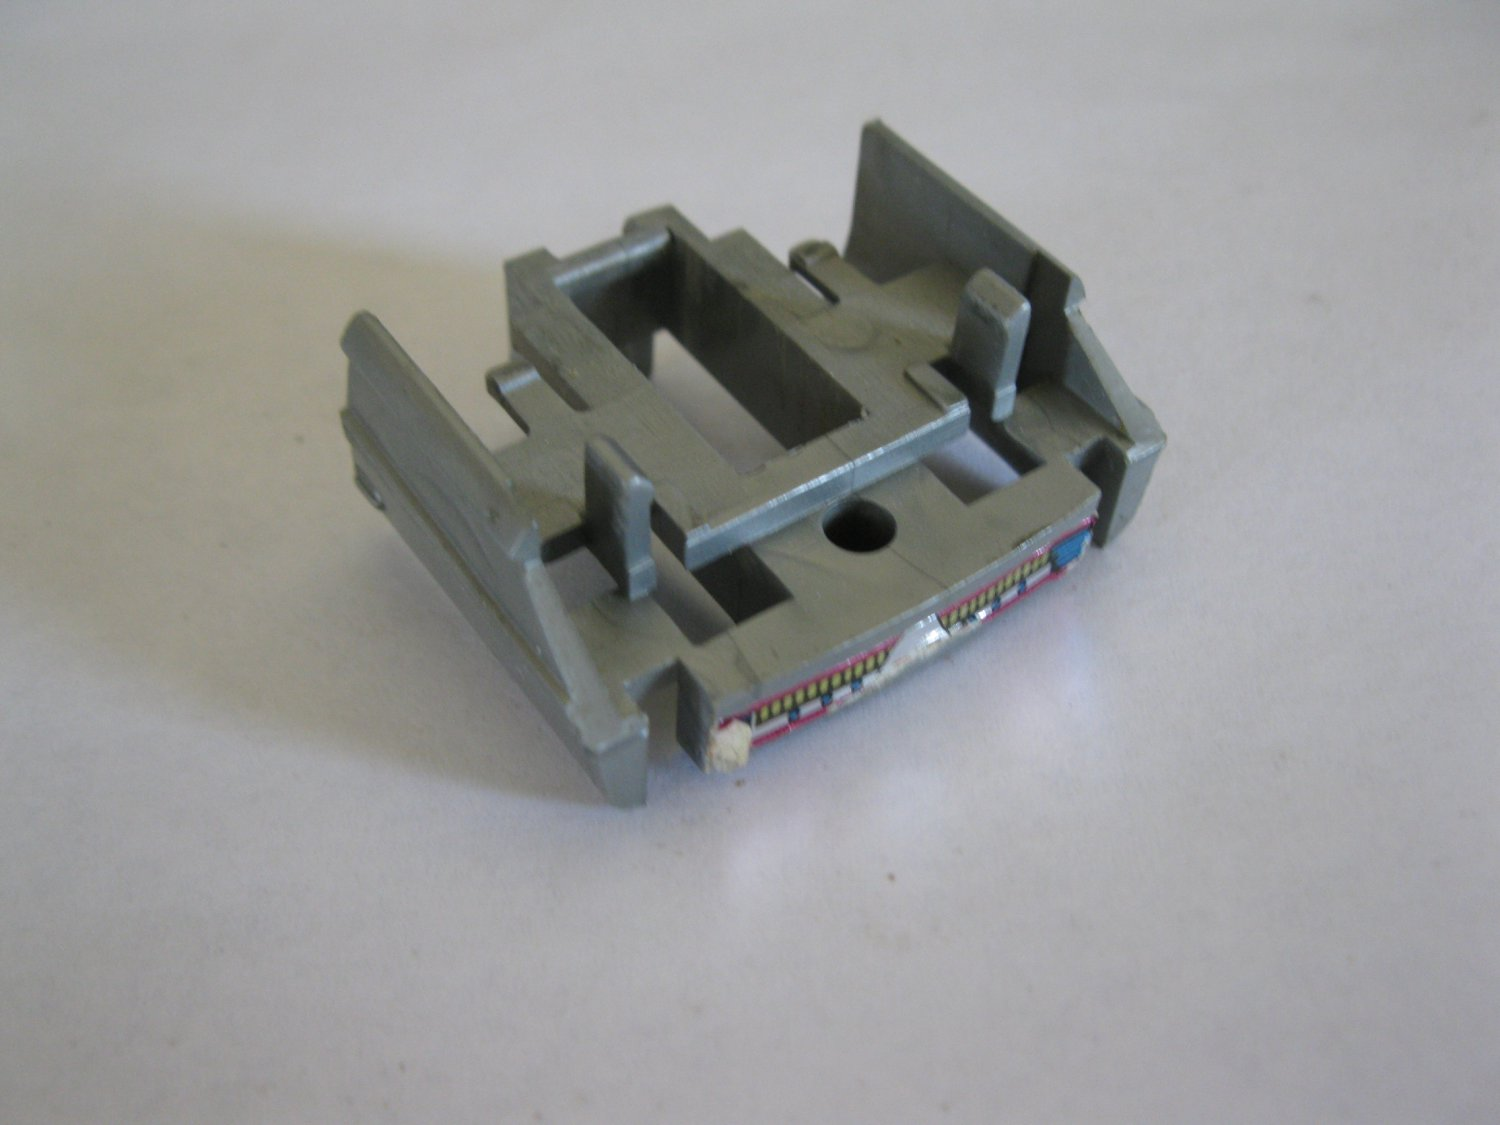 G1 Transformers Action figure part: 1984 Camshaft - Body Section w/ Doors